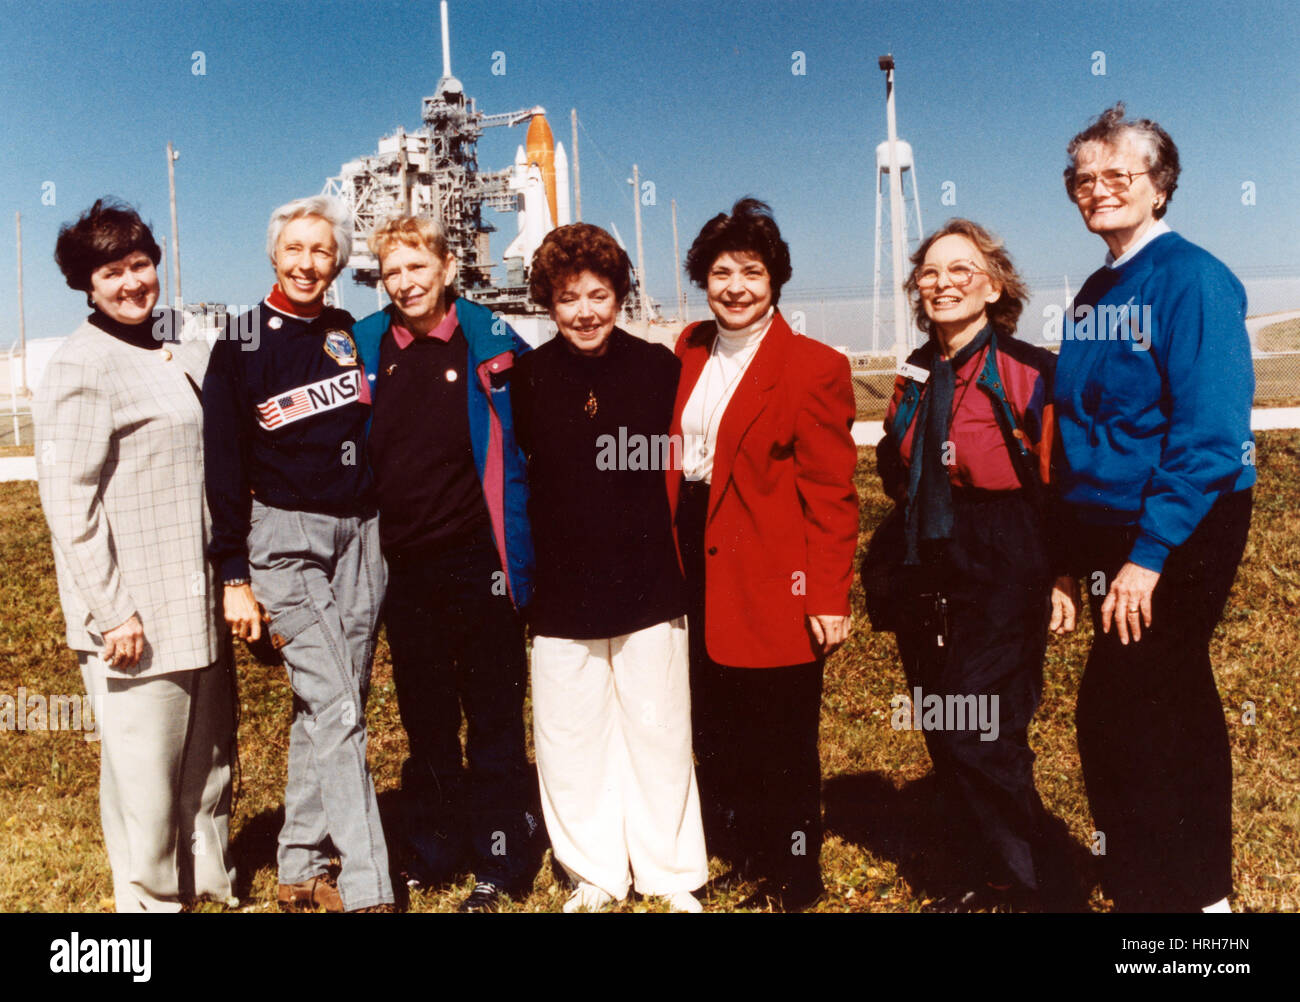 First Lady Astronaut Trainees - Stock Image